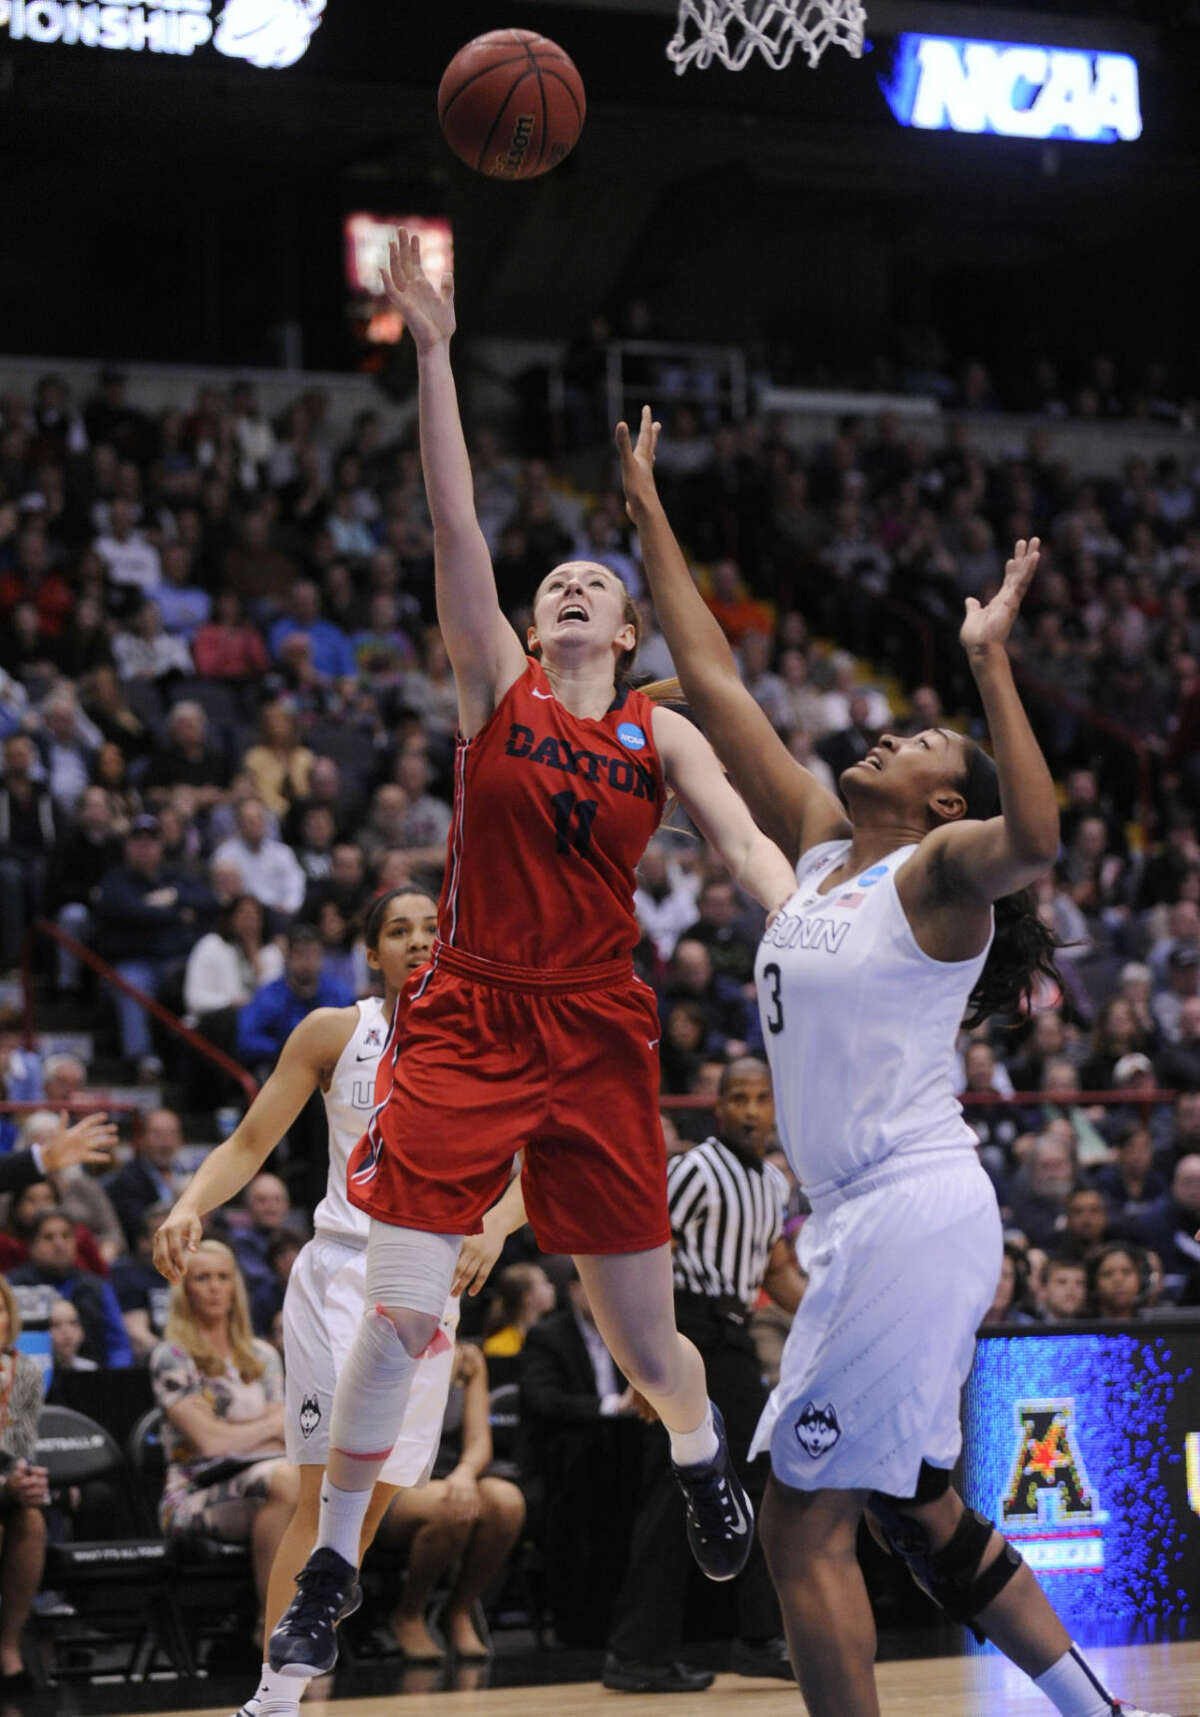 Dayton forward Ally Malott (11) shoots over Connecticut forward Morgan Tuck (3) during the first half of a regional final game in the NCAA women's college basketball tournament Monday, March 30, 2015, in Albany, N.Y. (AP Photo/Tim Roske)